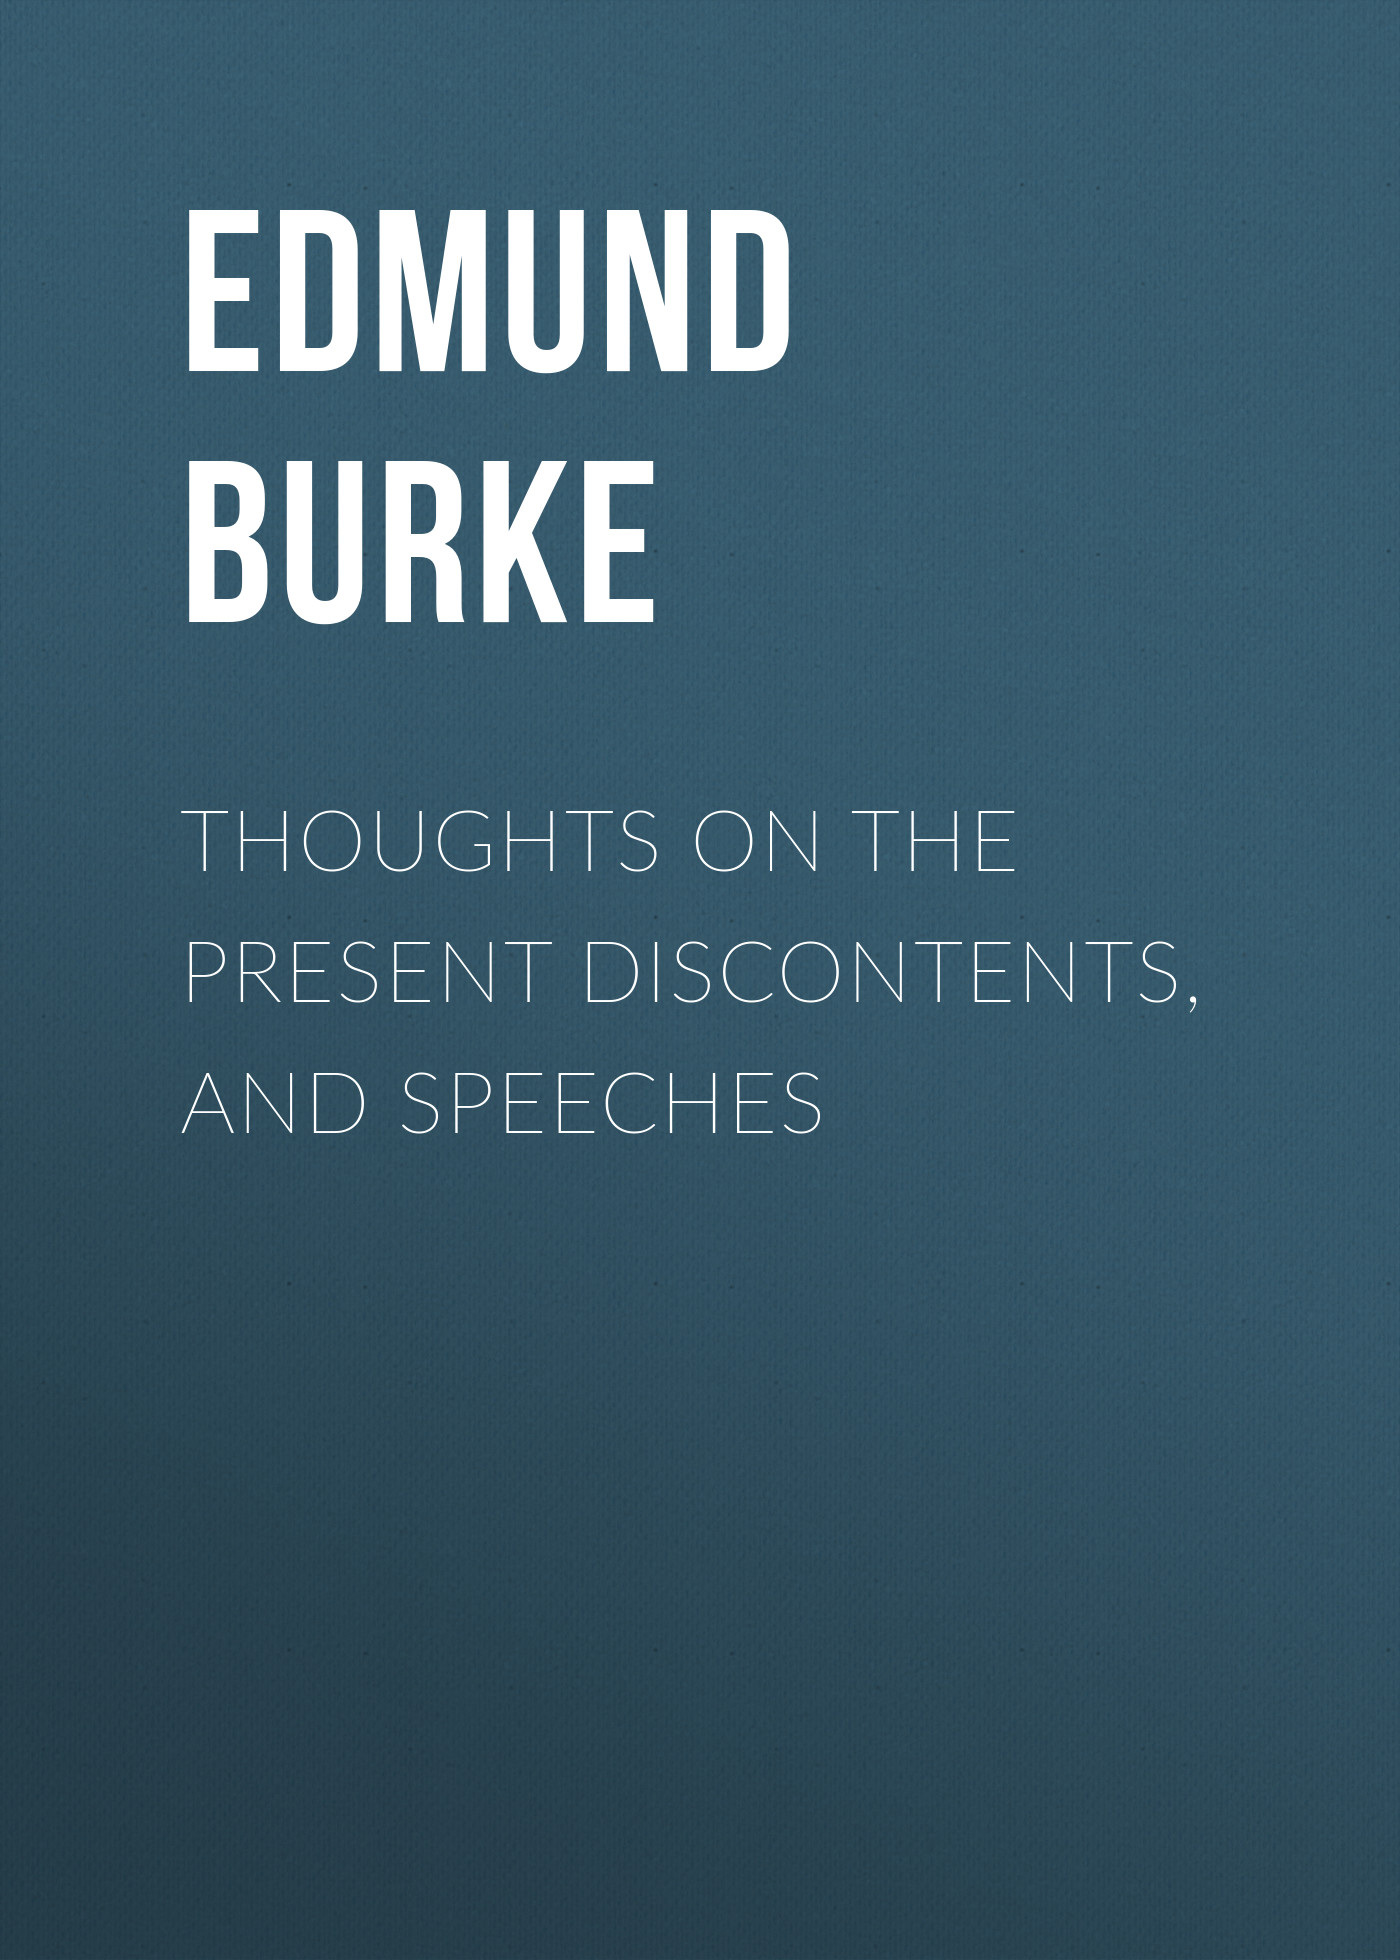 Edmund Burke Thoughts on the Present Discontents, and Speeches global discontents